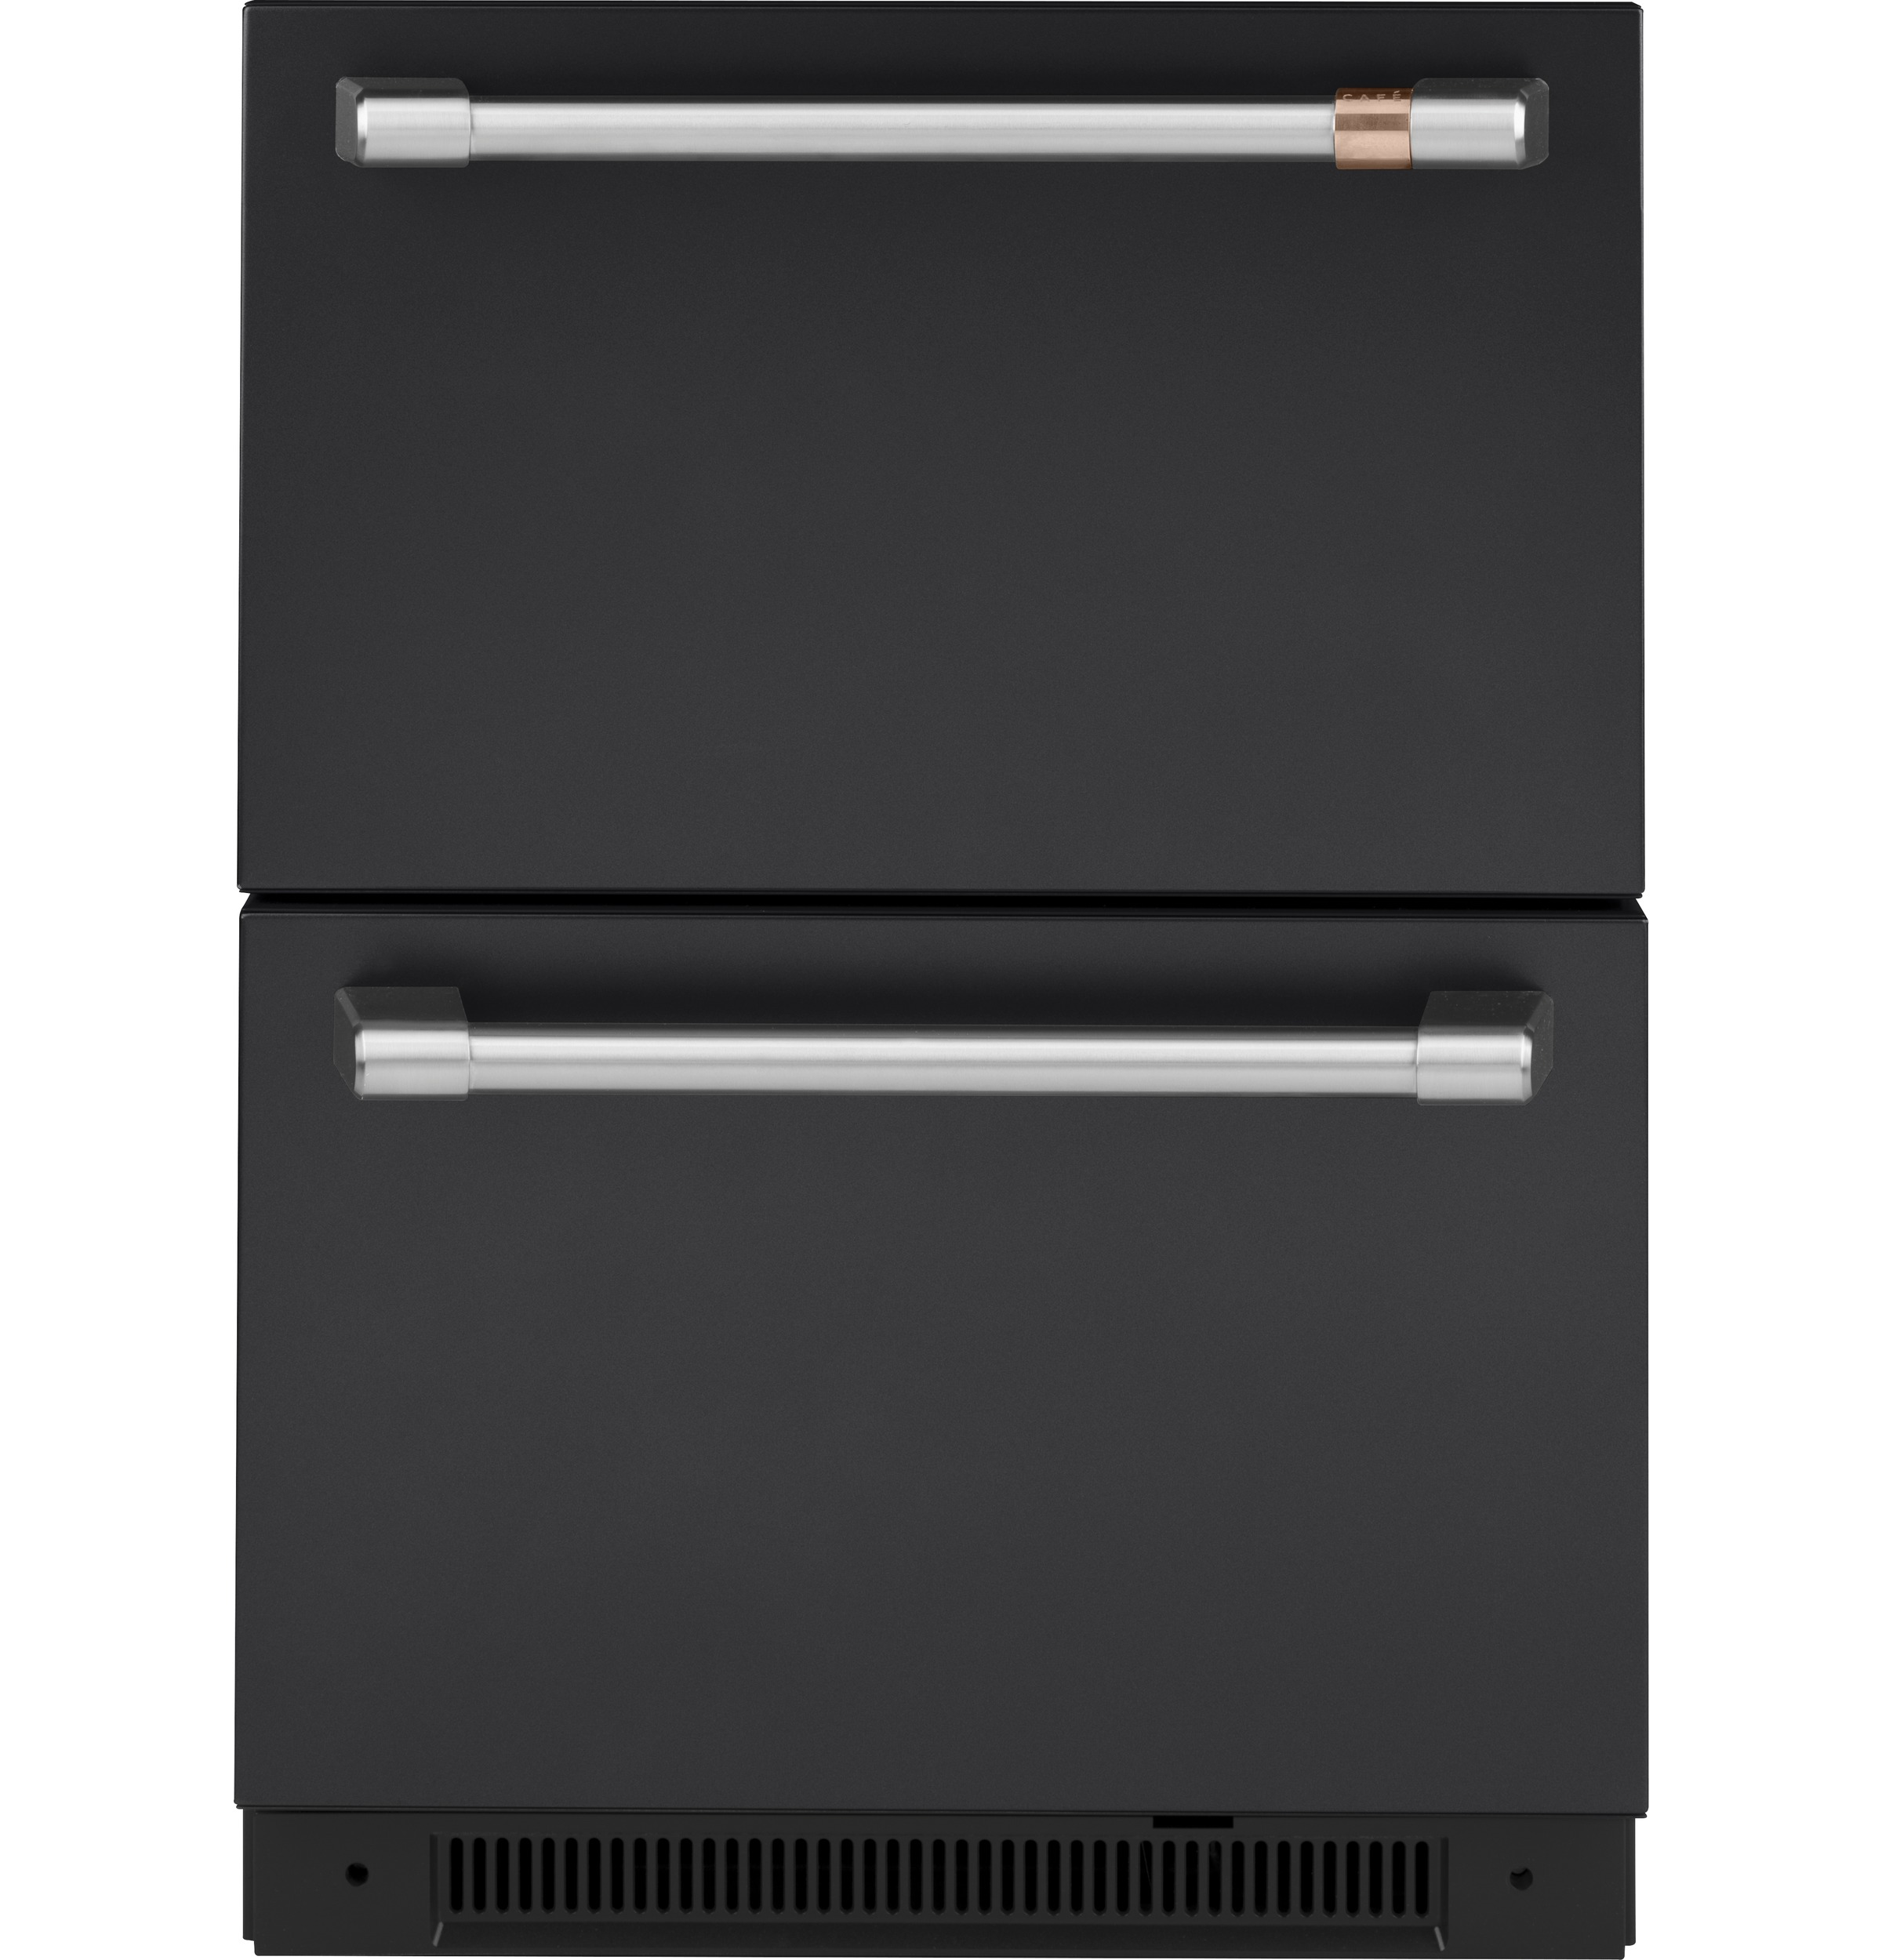 Model: CDE06RP3ND1 | Cafe Café™ 5.7 Cu. Ft. Built-In Dual-Drawer Refrigerator